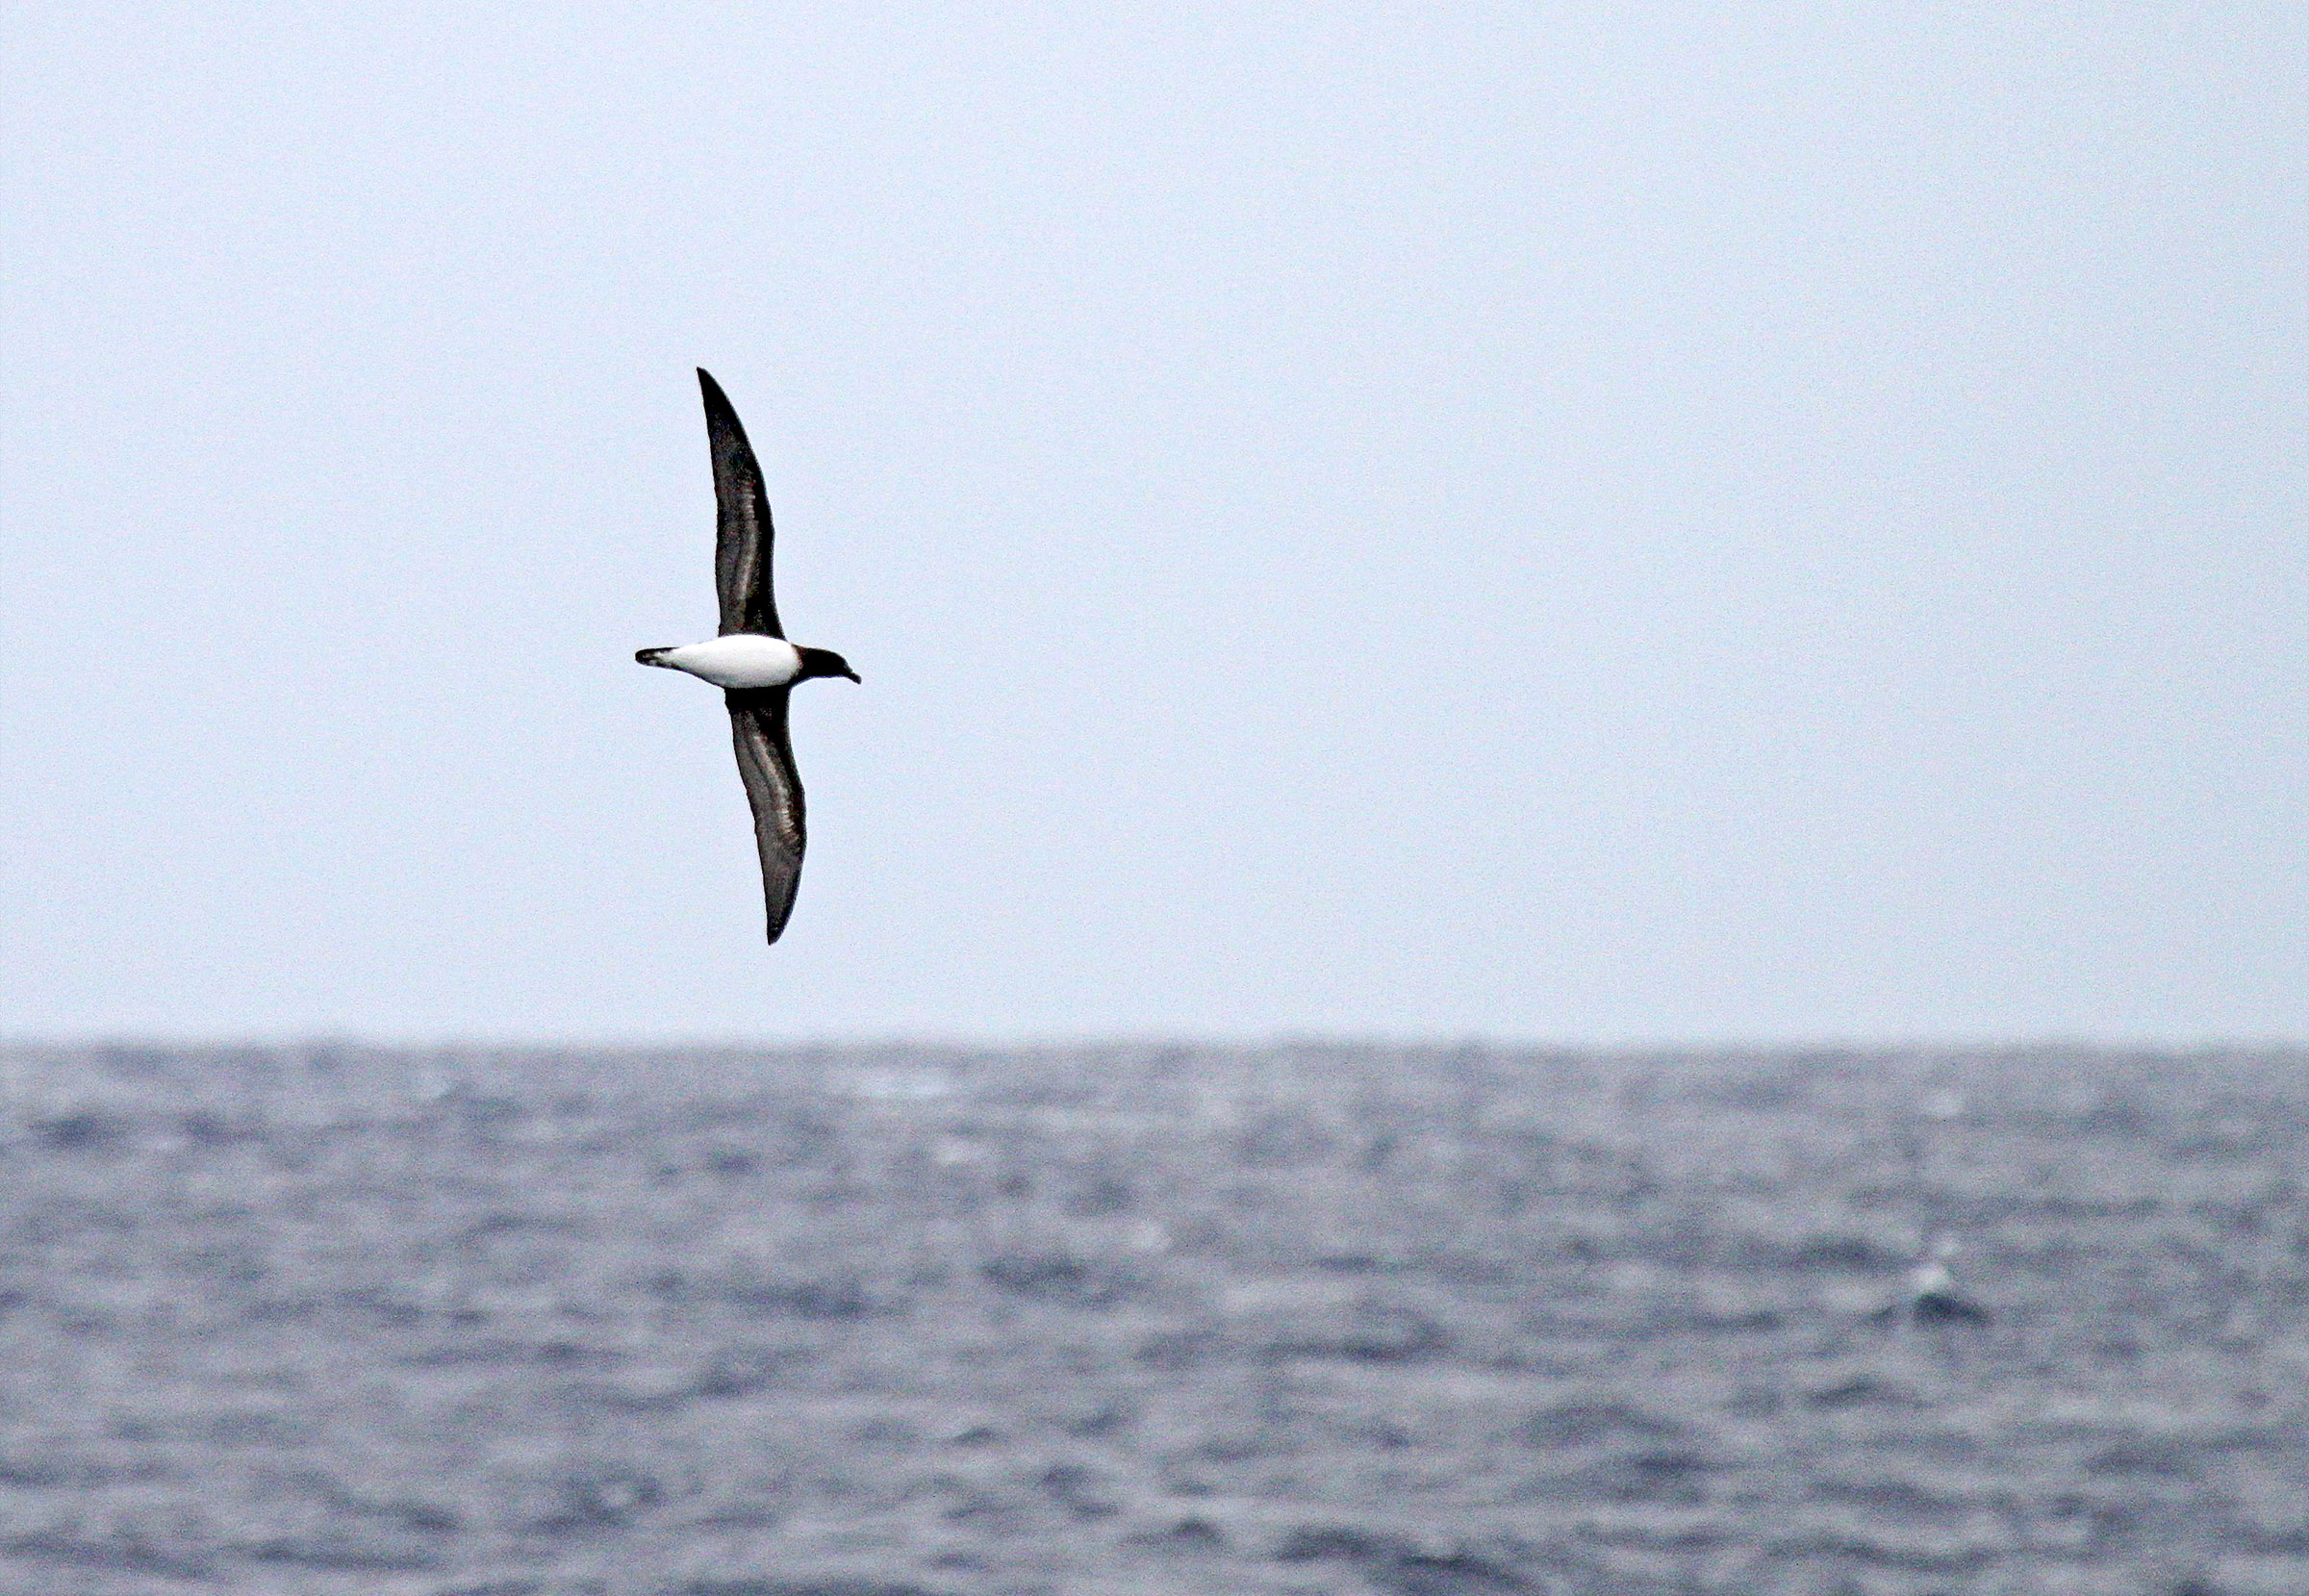 A Tahiti Petrel spotted off the coast of North Carolina may have arrived at its surprising location via hurricane. Agami Photo Agency/Alamy